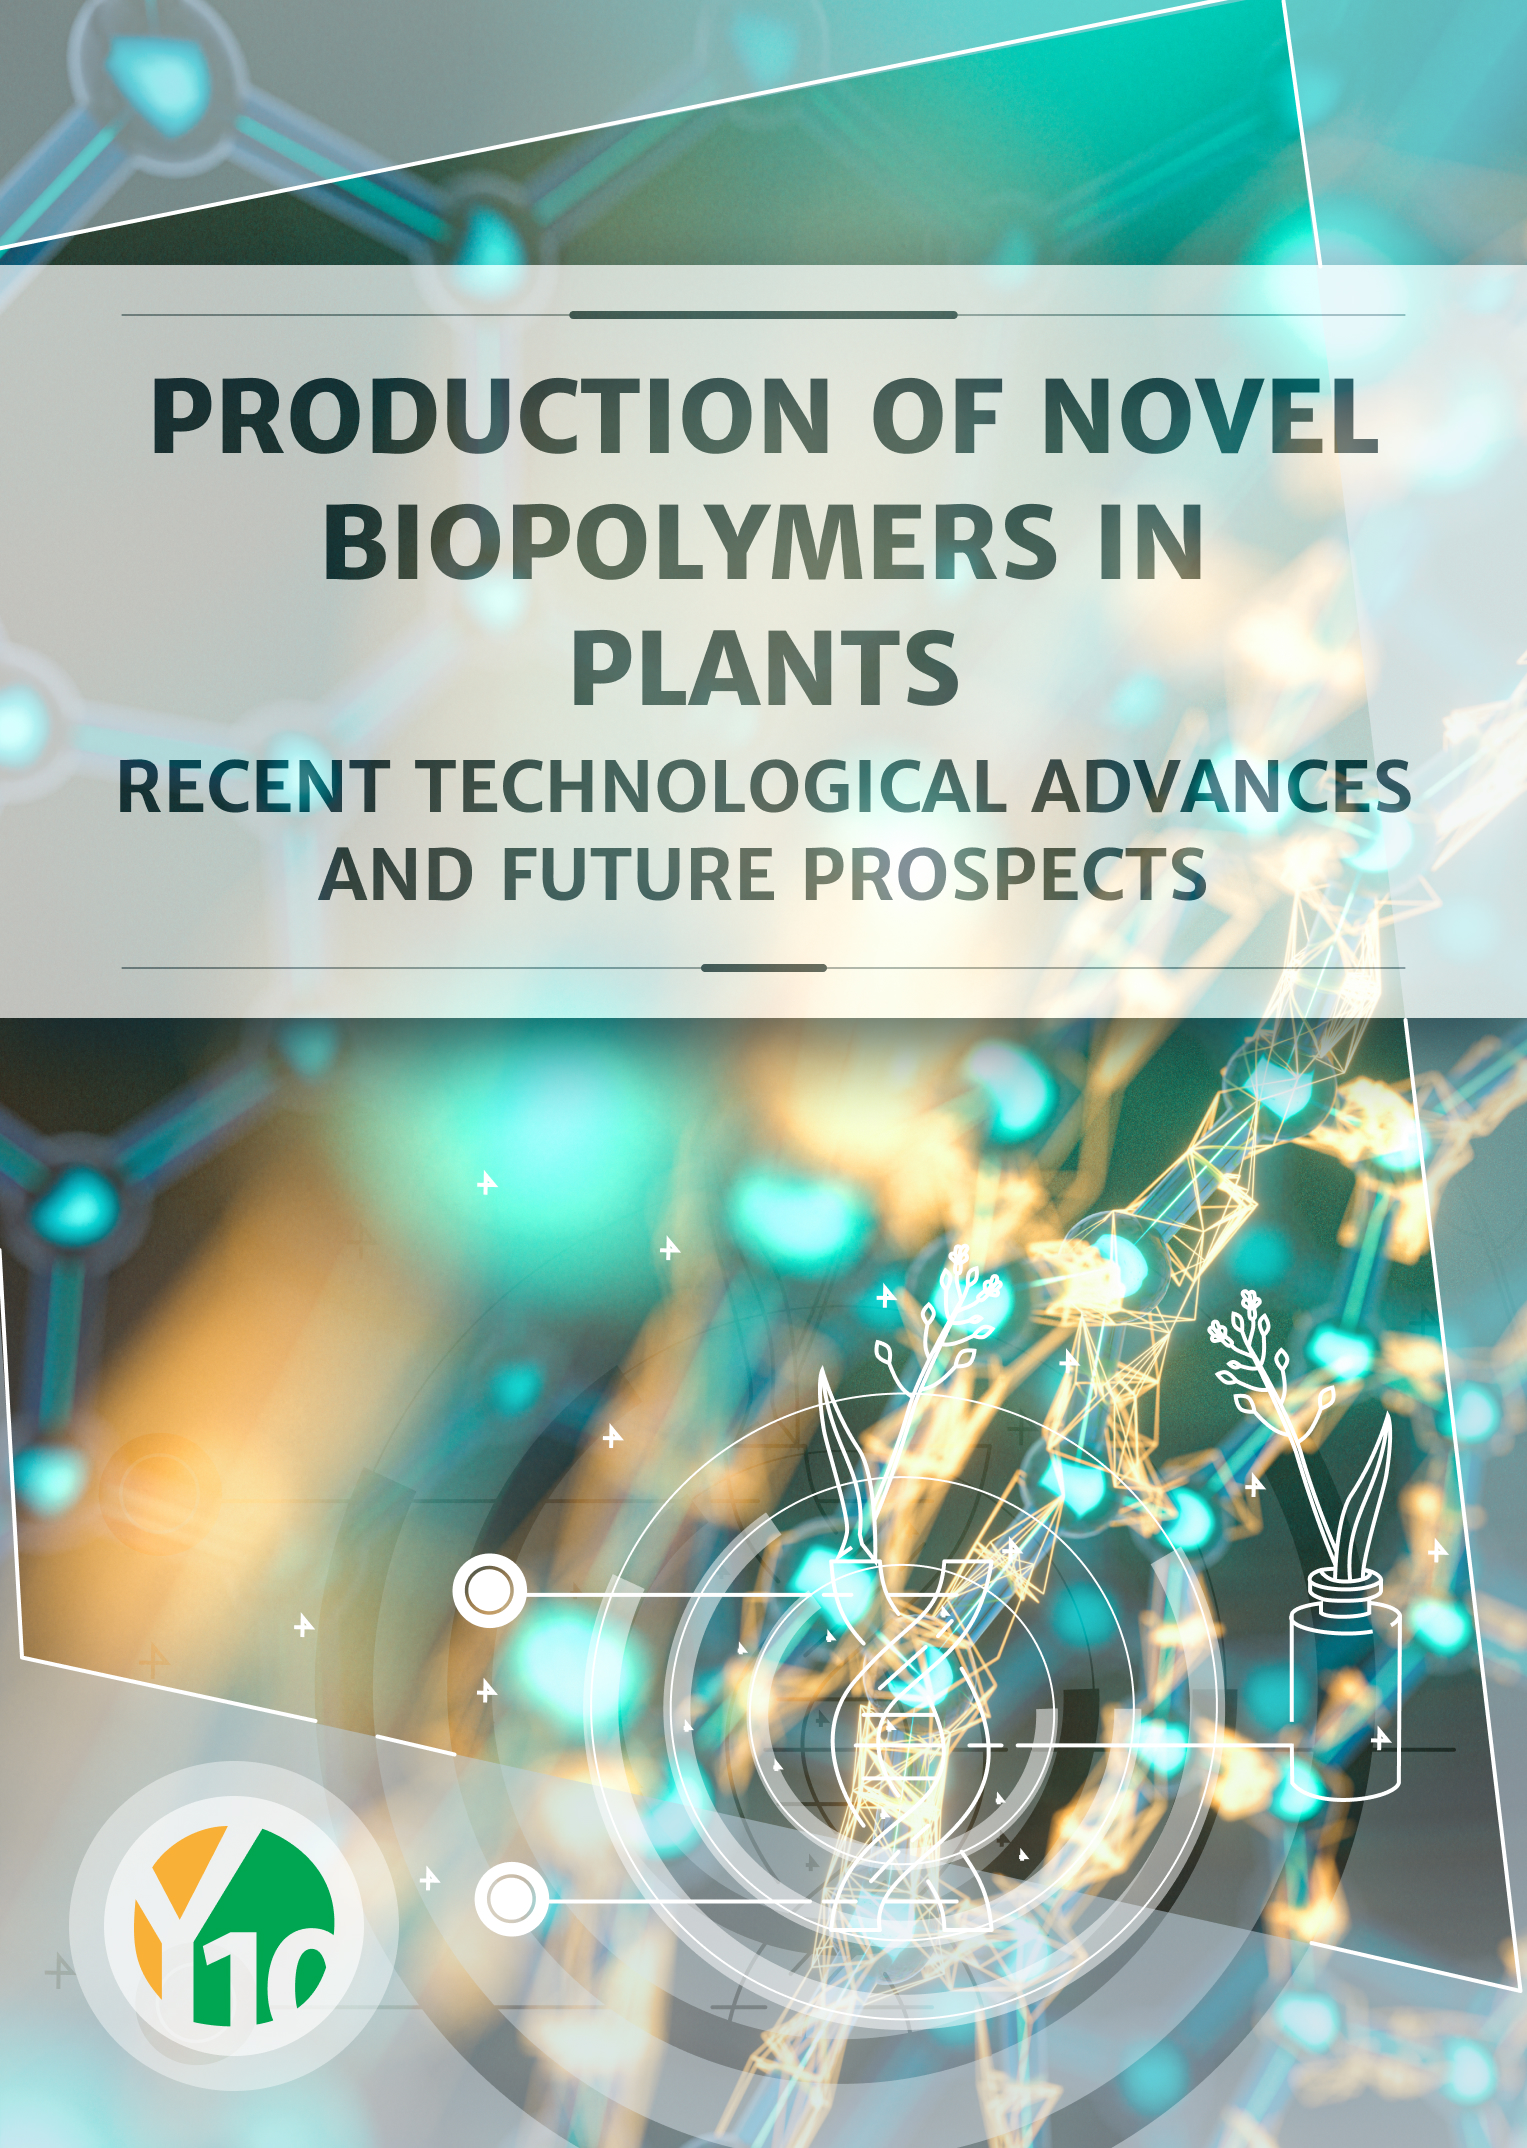 Production of novel biopolymers in plants: recent technological advances and future prospects